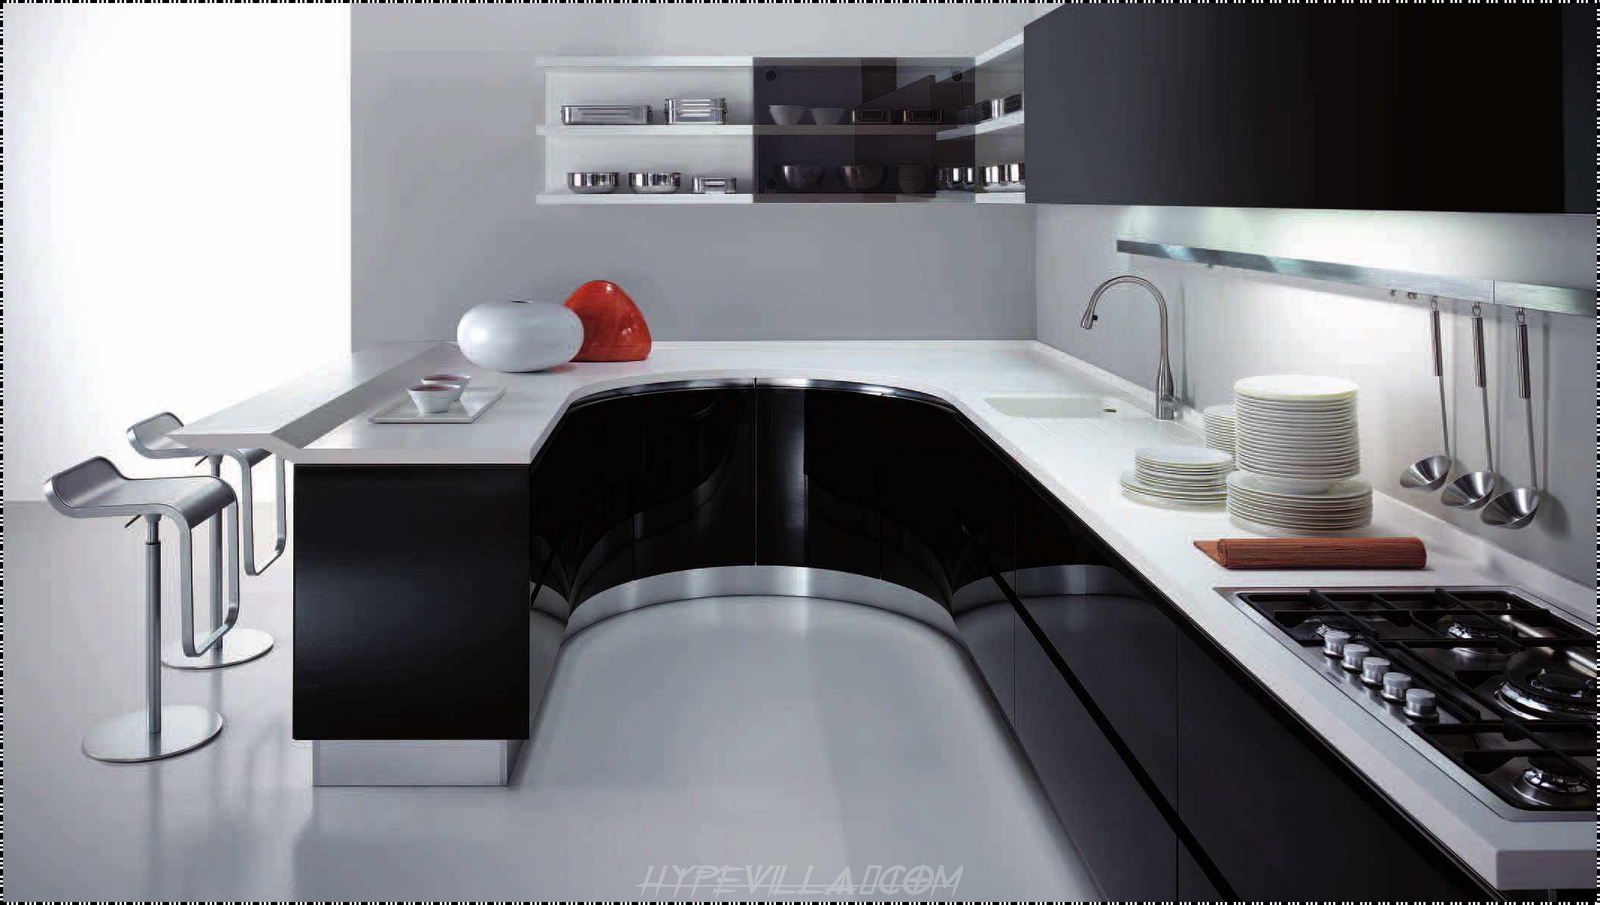 The best kitchen design in the world for The best kitchen design